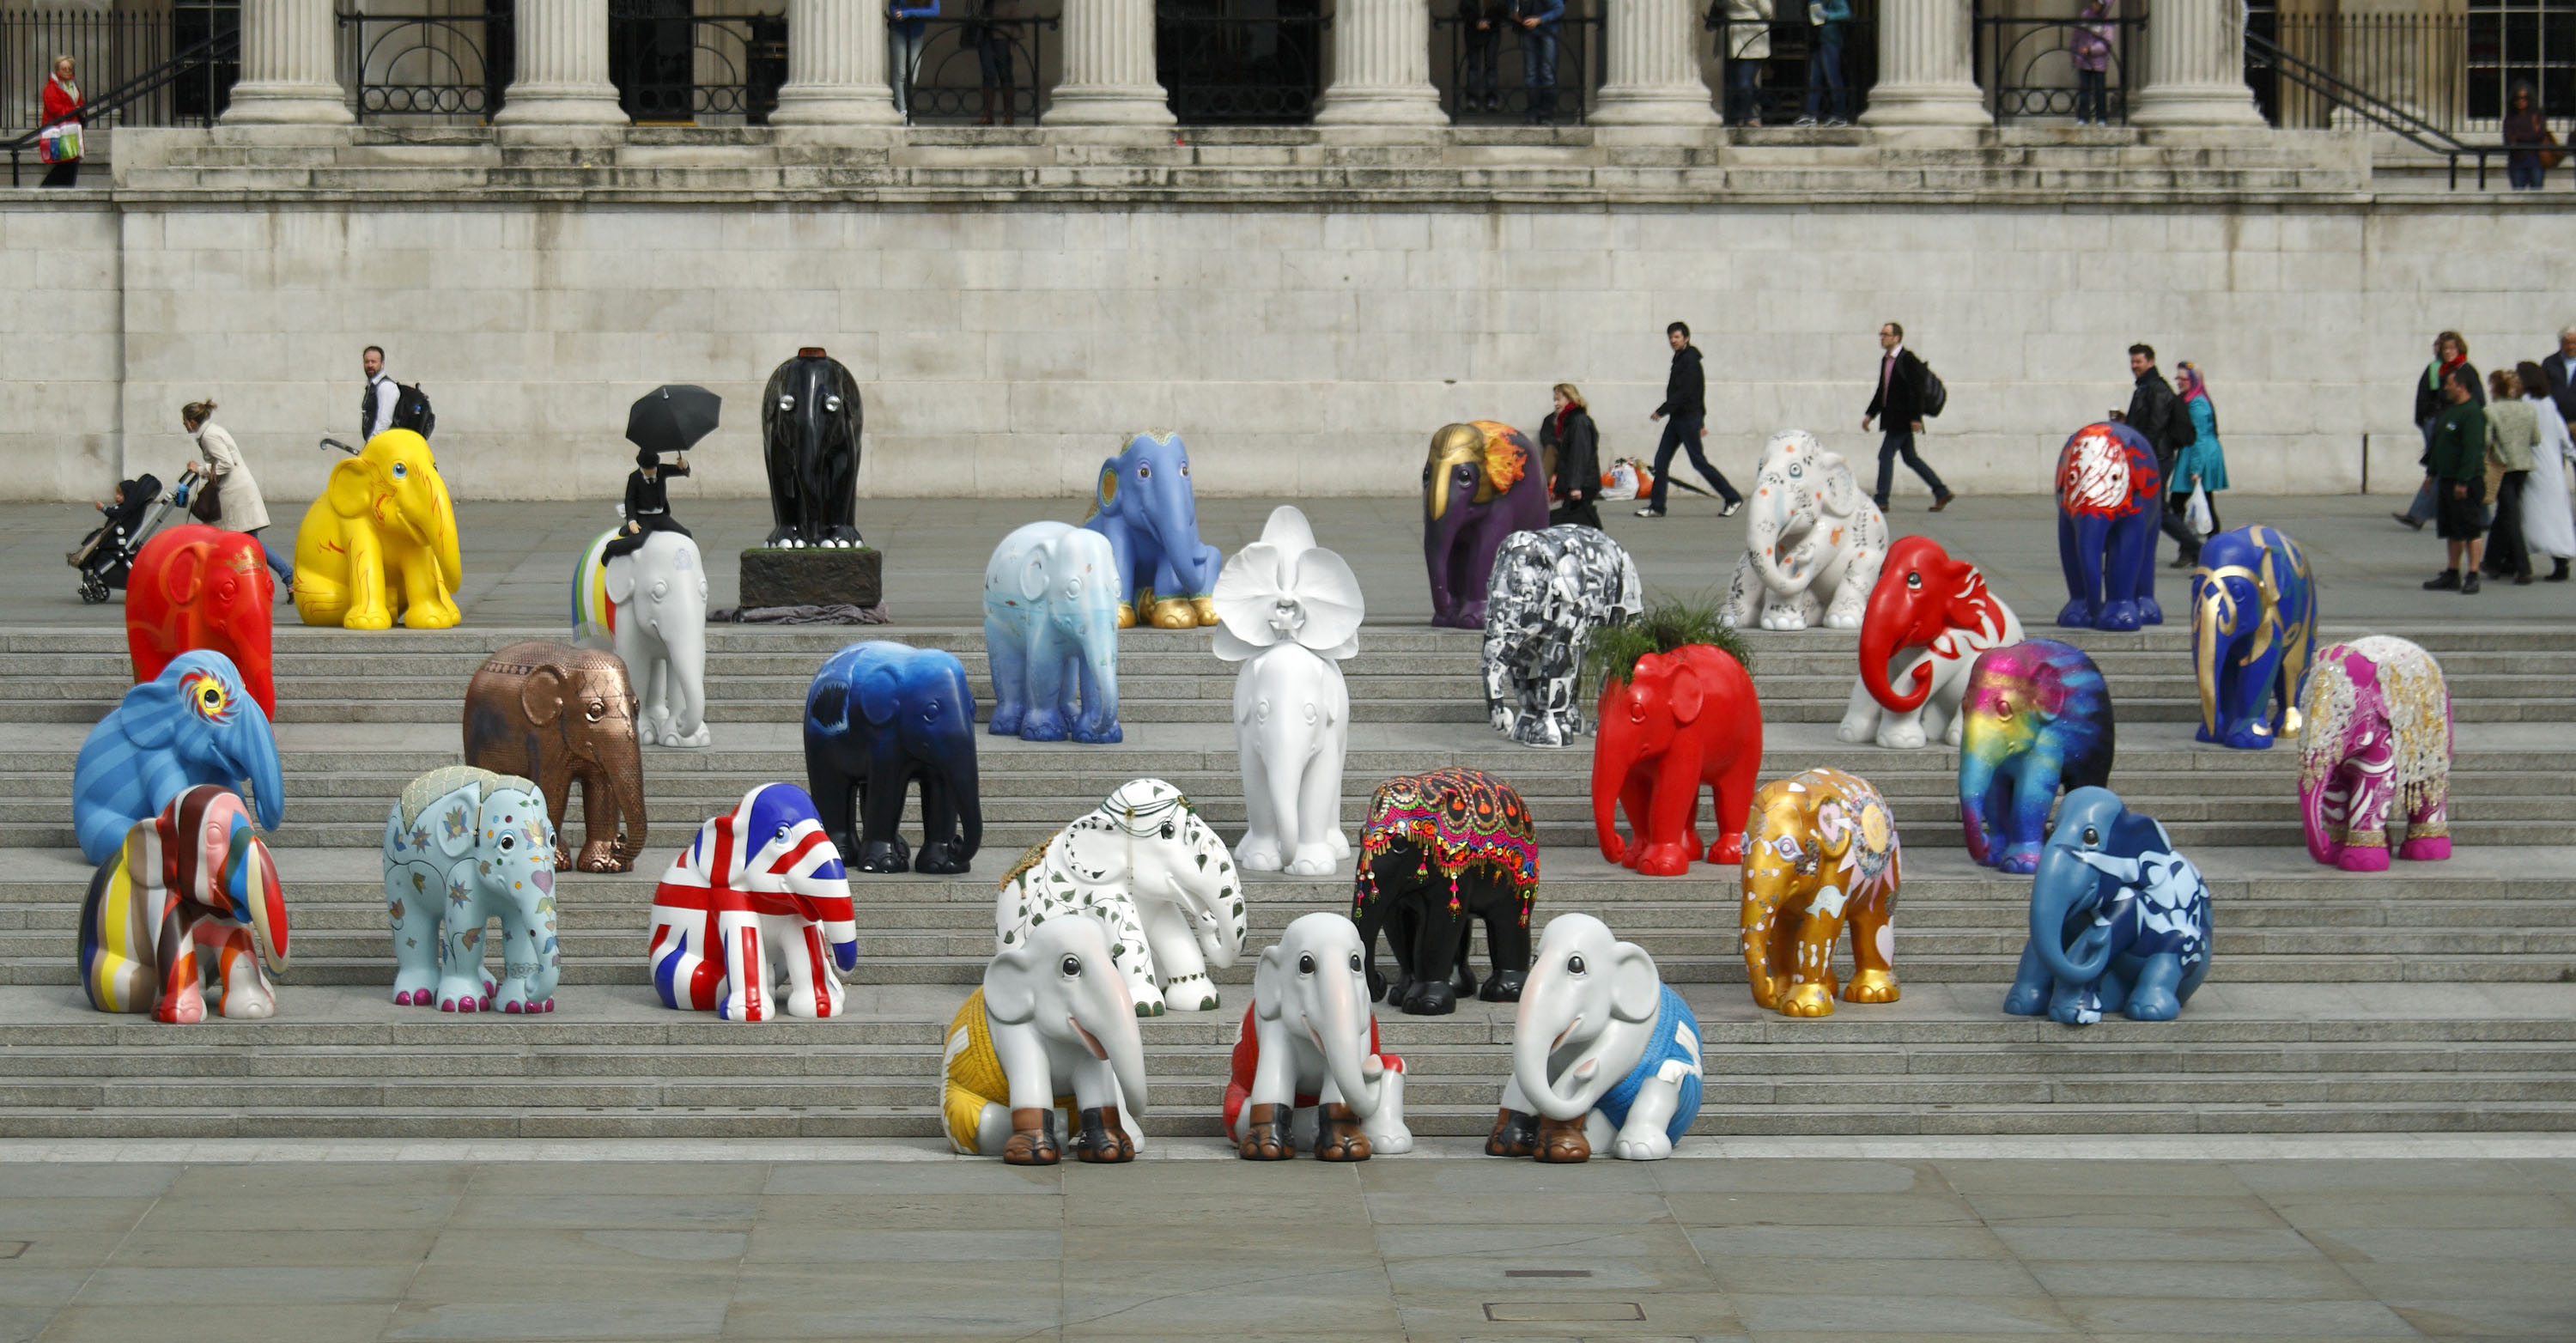 Attends The Launch Of The Elephant Parade 2010 At Trafalgar Square London, On May 4, 2010..   Mike Marsland Photos/The Elephant Parade